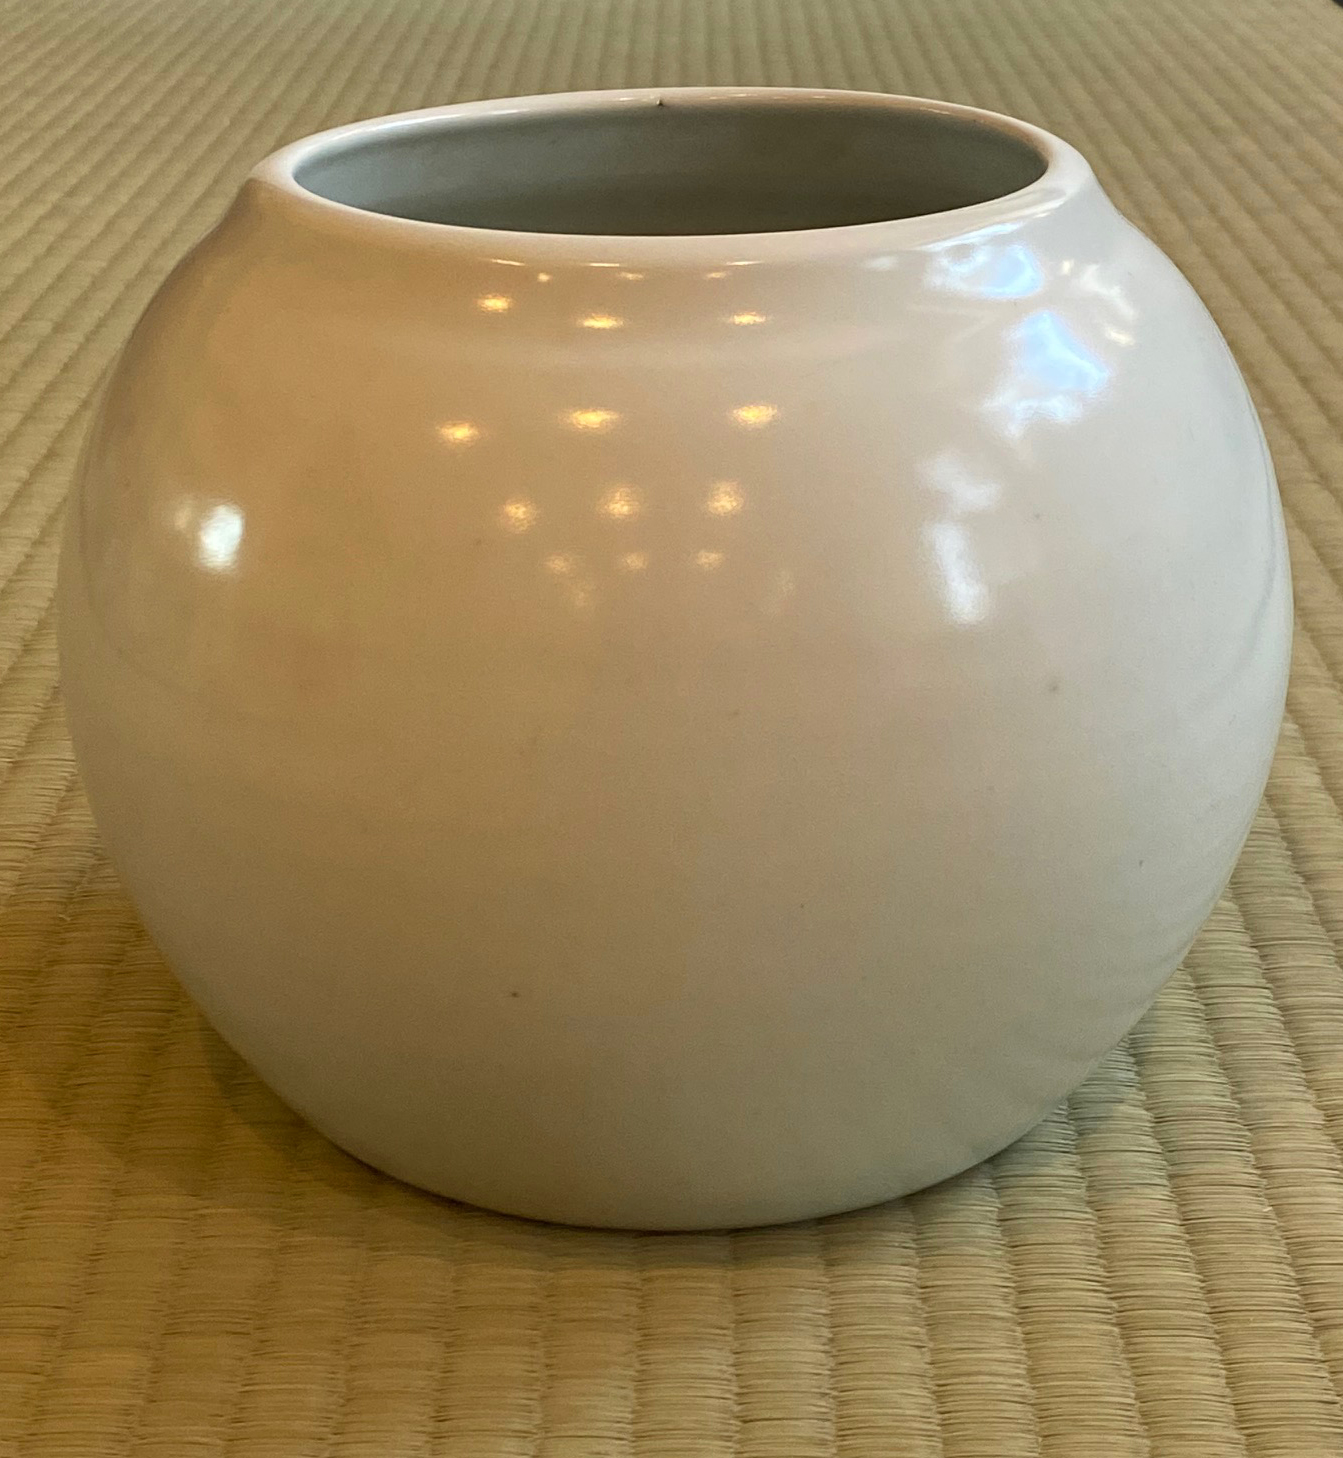 White Porcelain Jar by Tomimoto Kenkichi